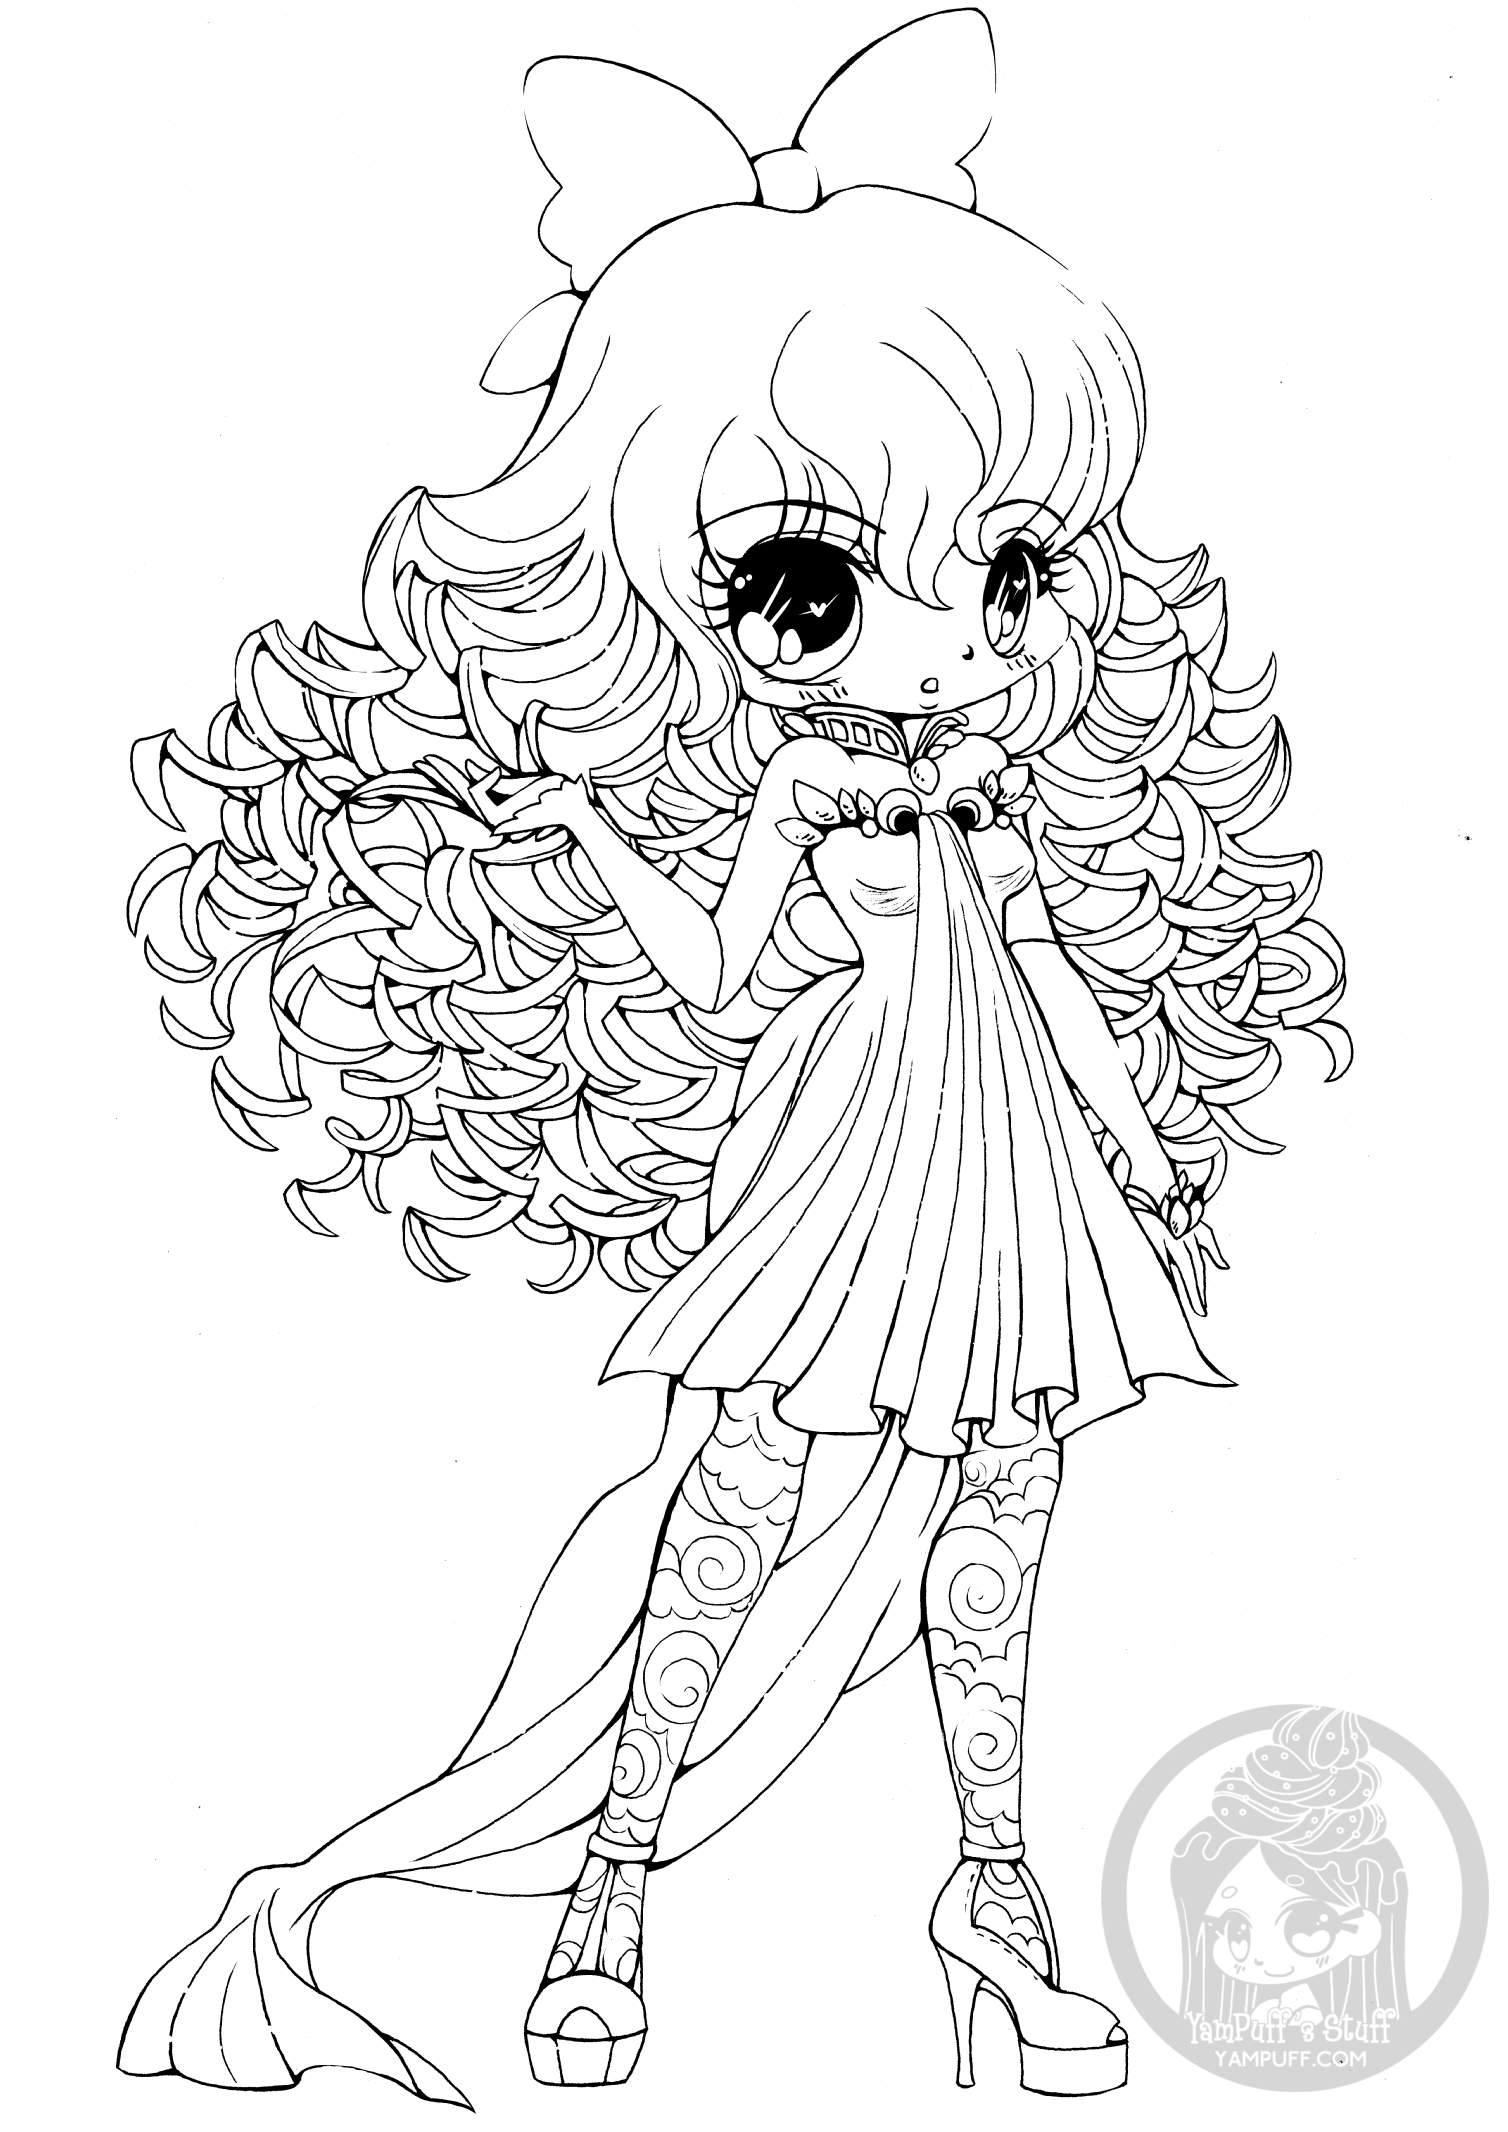 cute chibi girl coloring pages cute chibi coloring pages free coloring pages for kids 21 girl coloring cute pages chibi